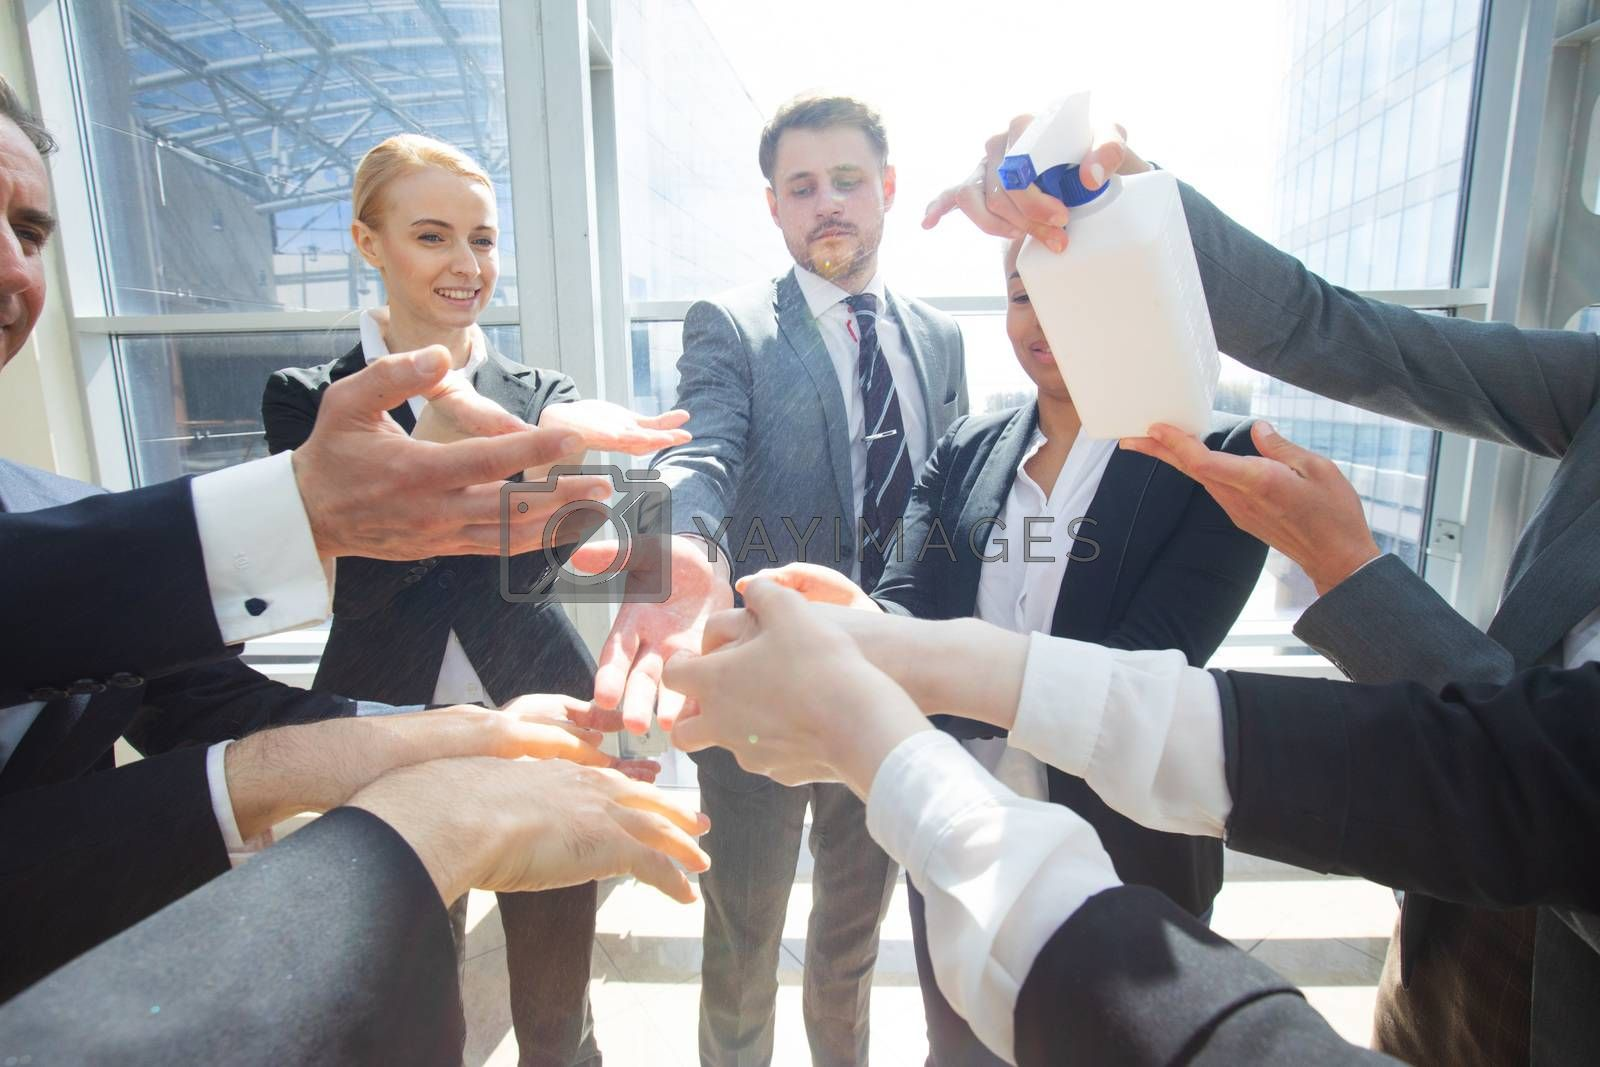 Business people using hand sanitizer by ALotOfPeople